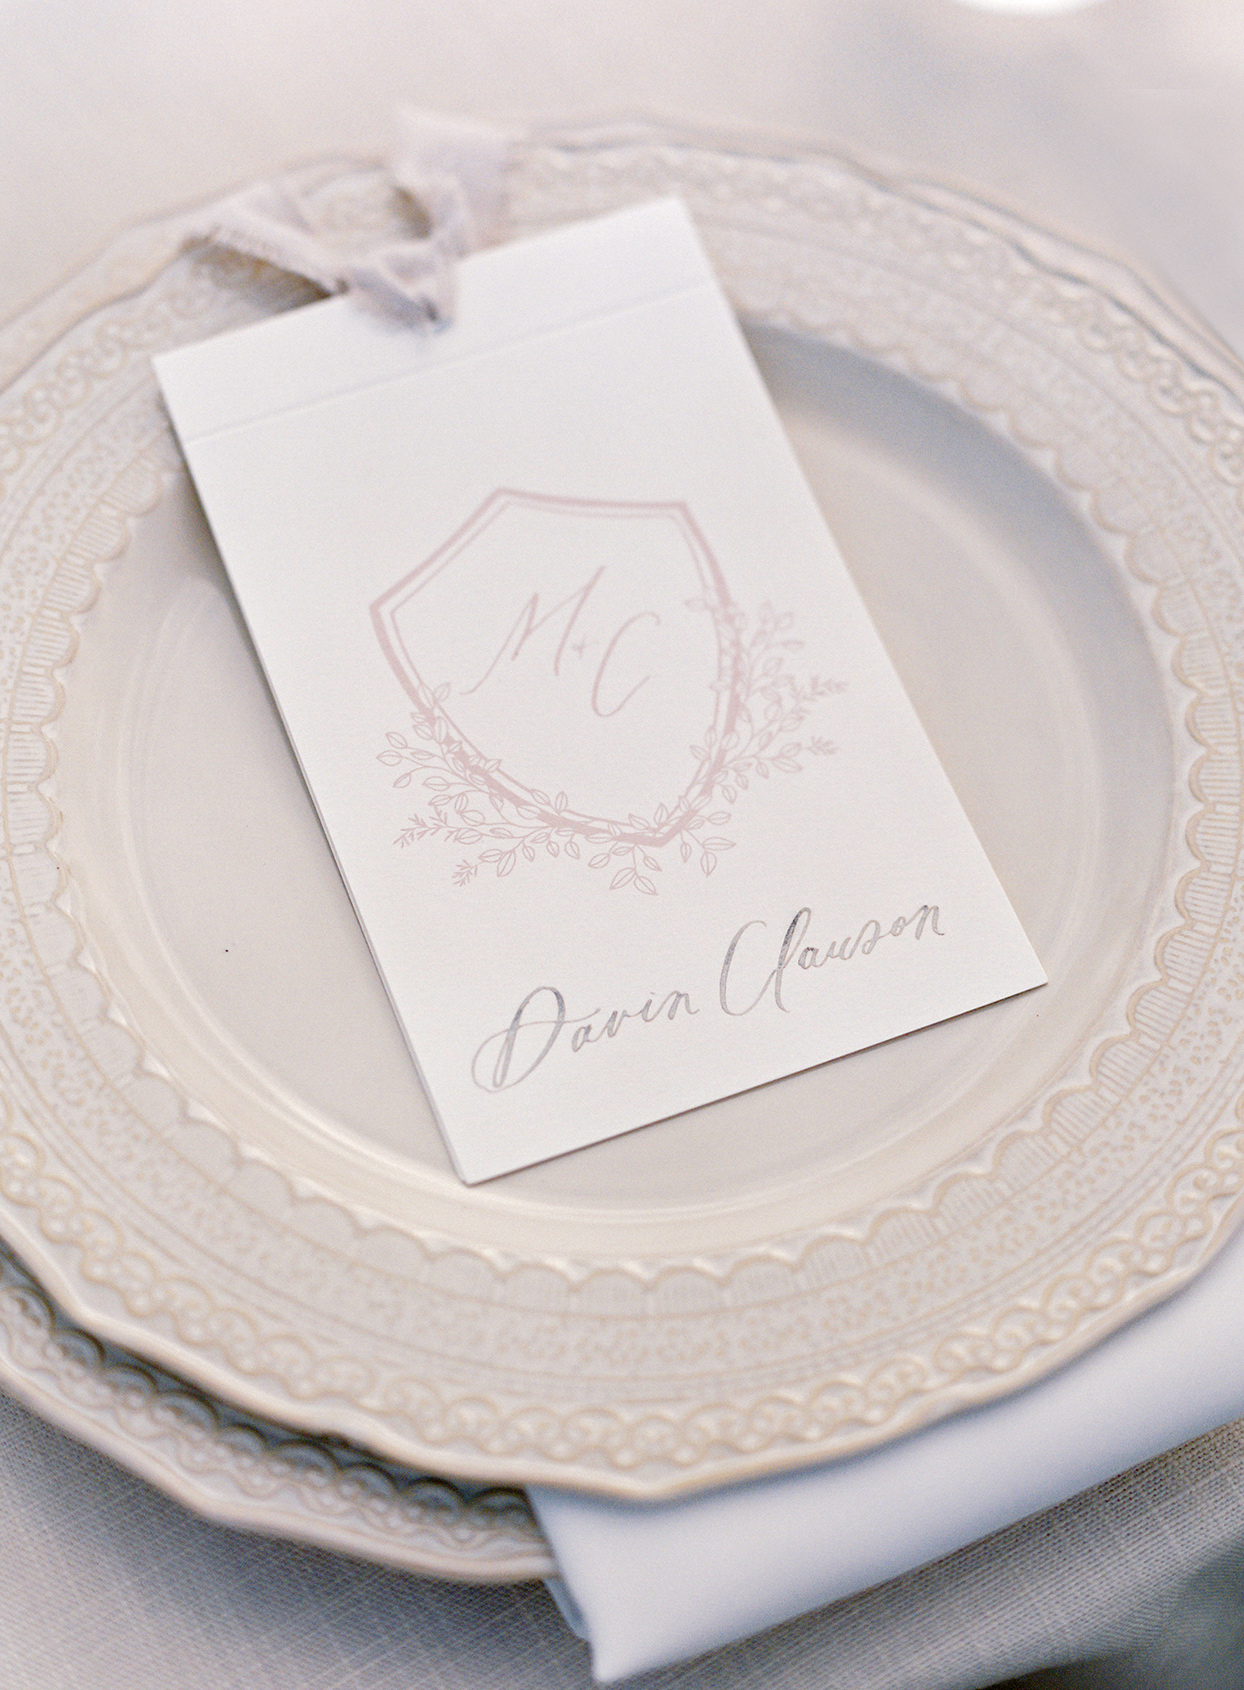 micaela curtis wedding crest on place card